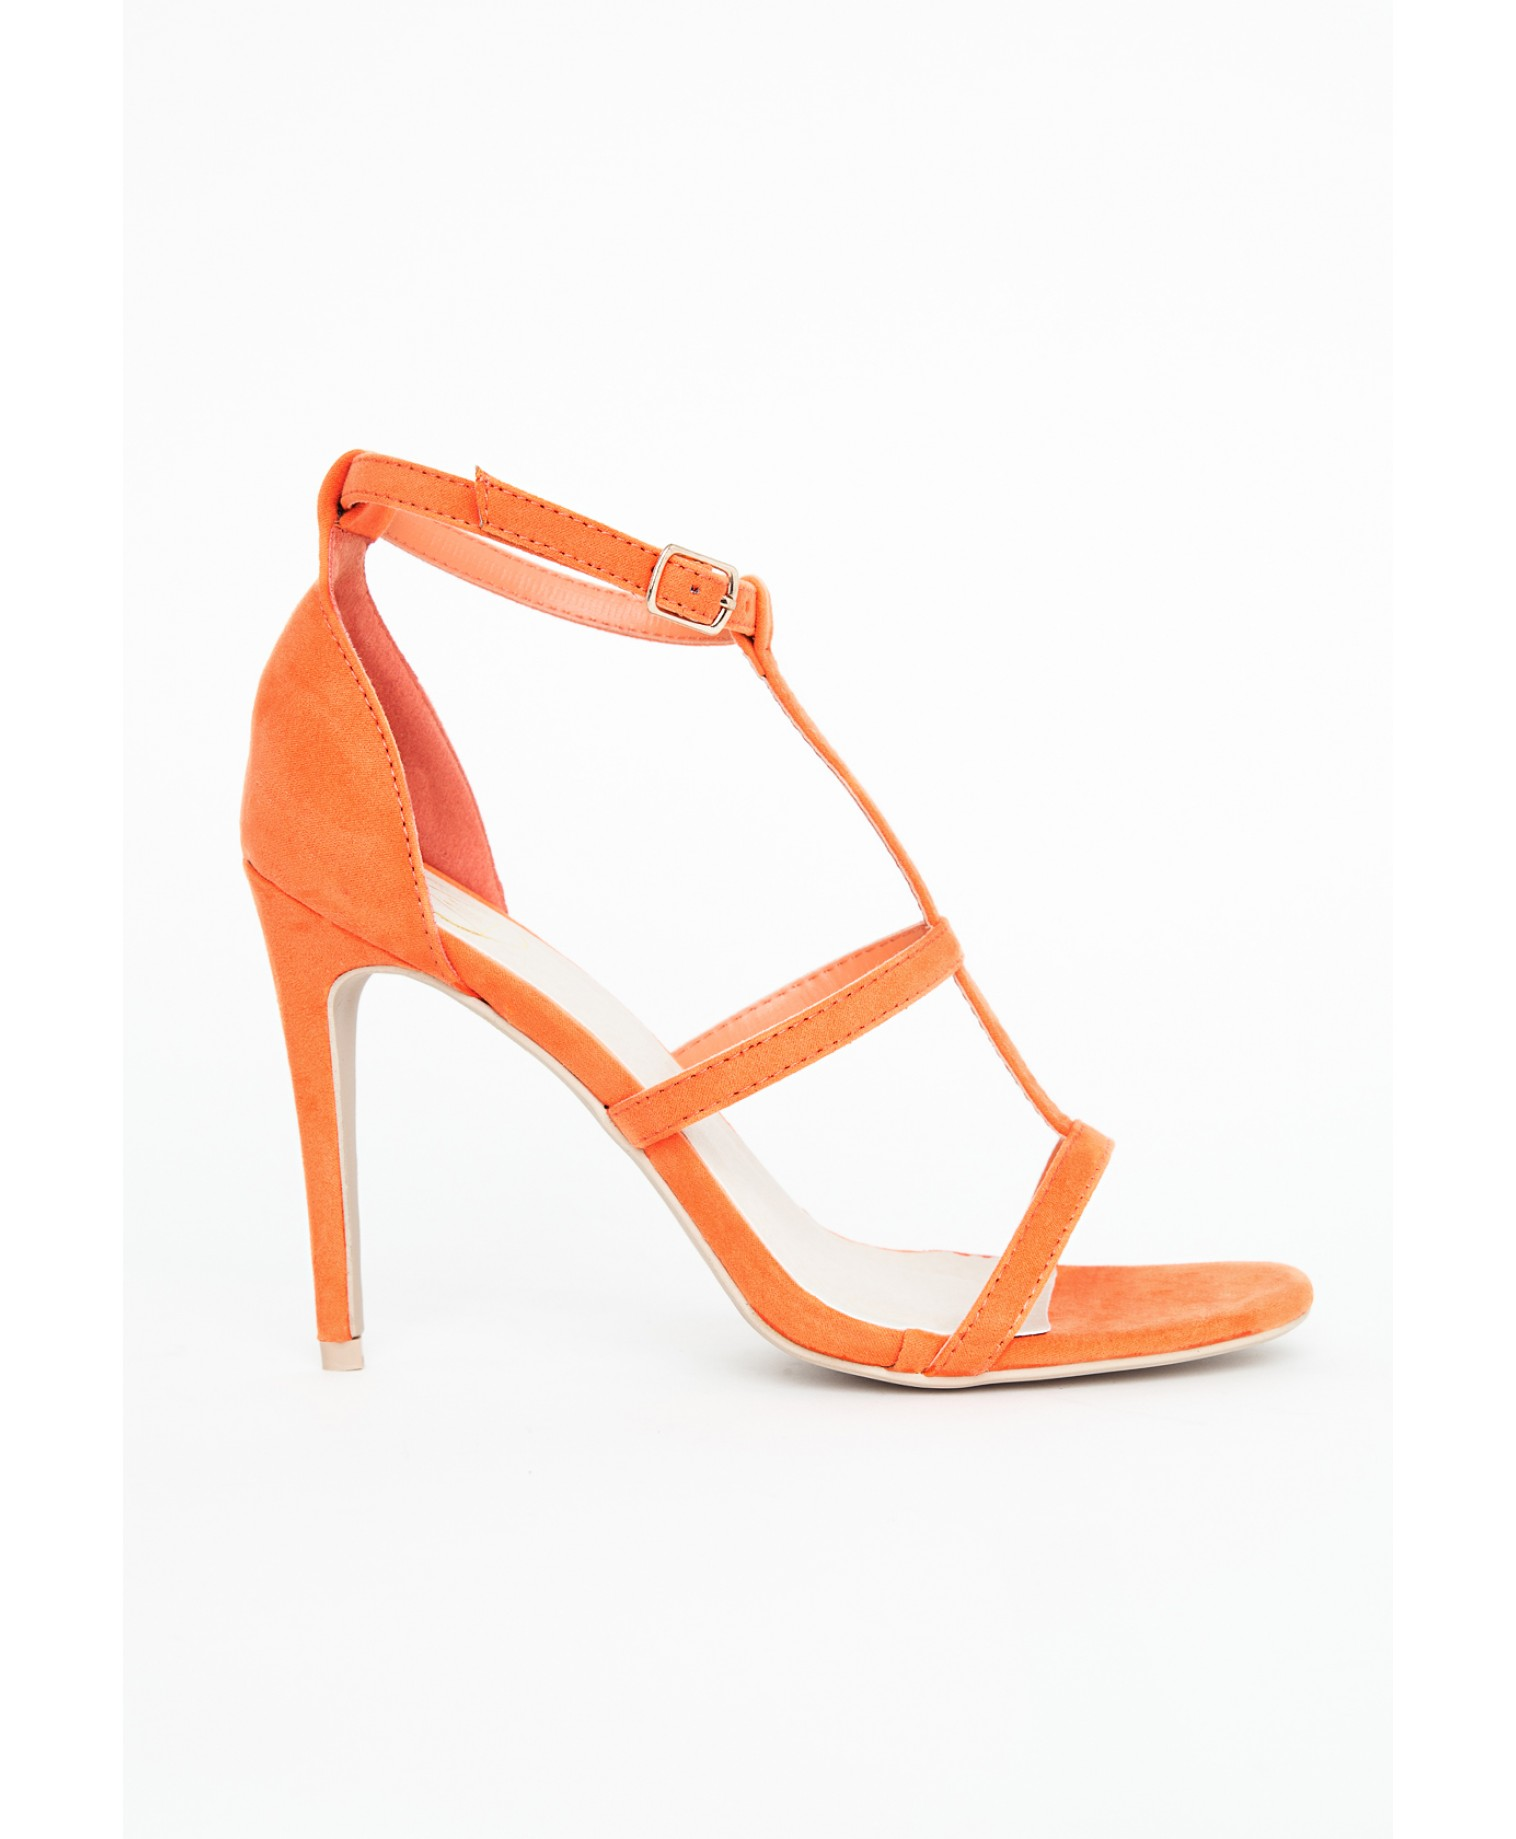 Gemma caged heel sandals in orange 3